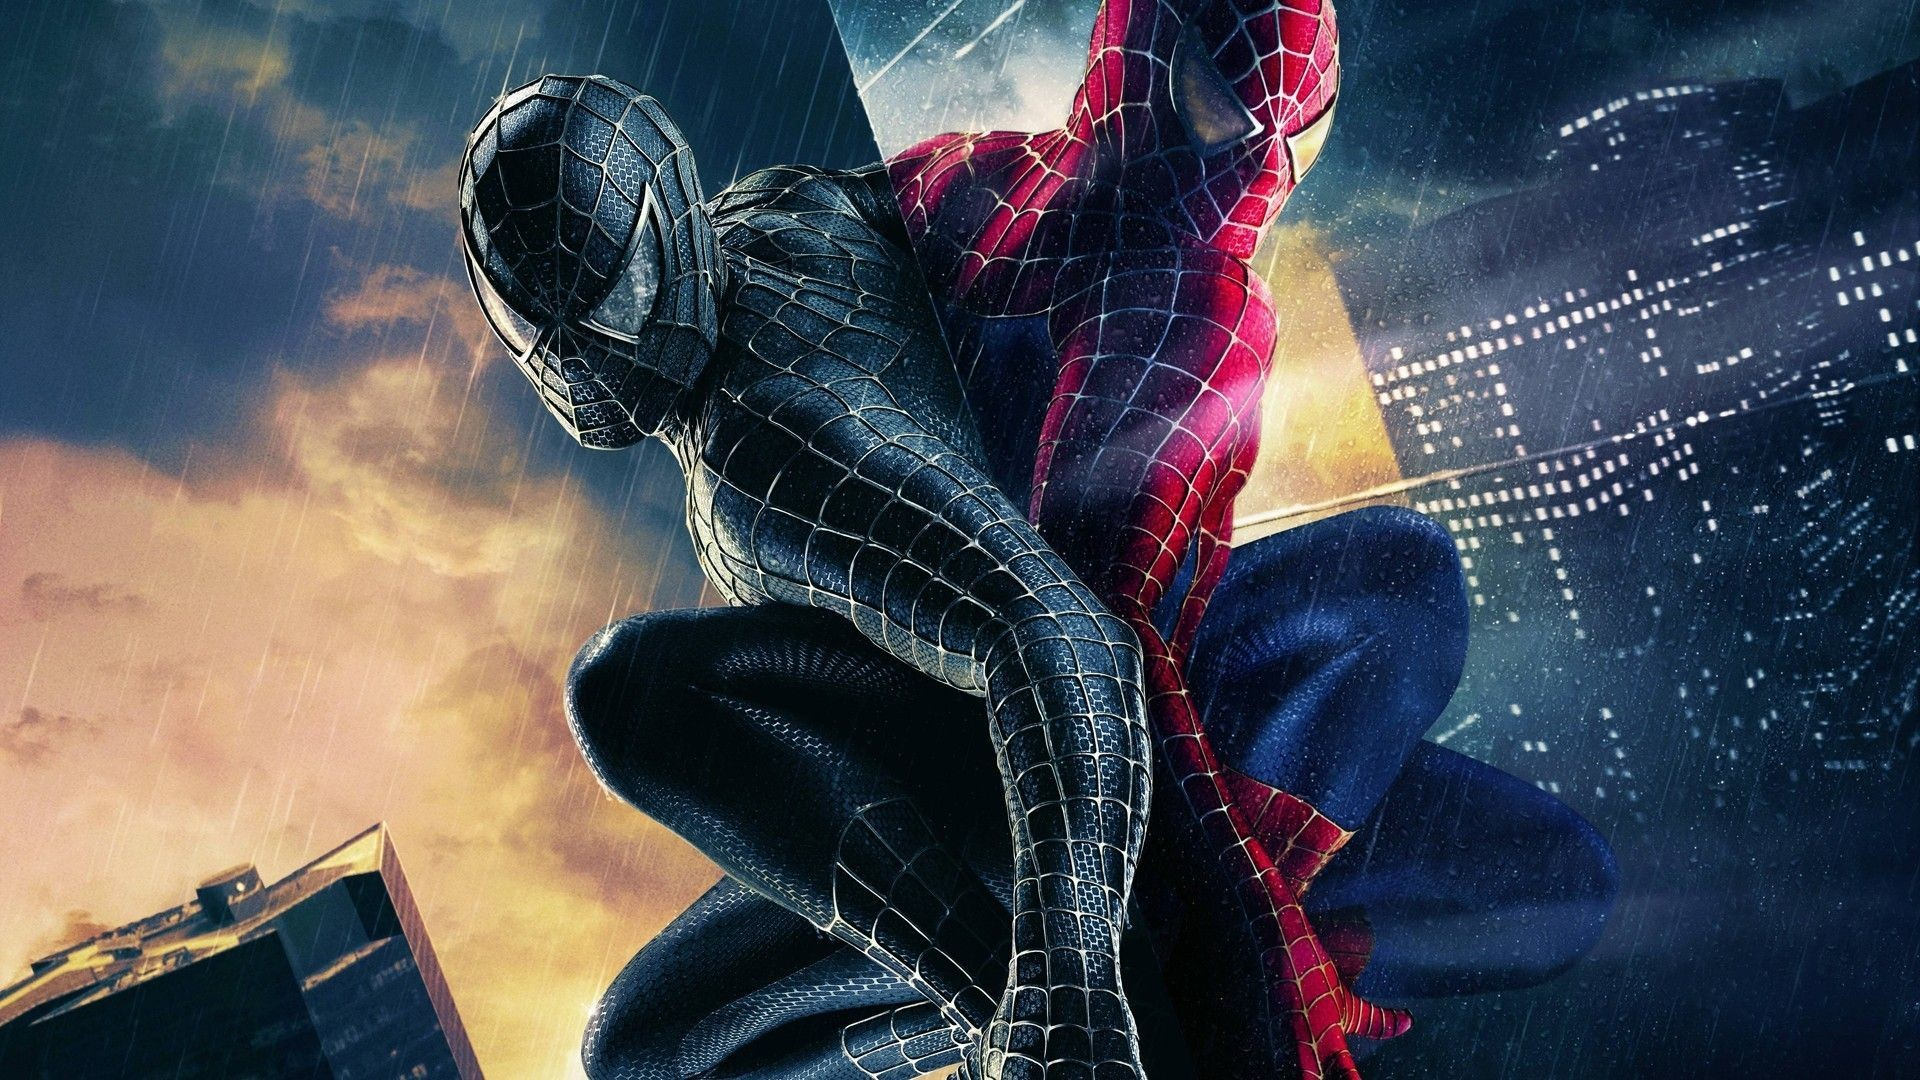 Amazing Spiderman Hd Wallpapers